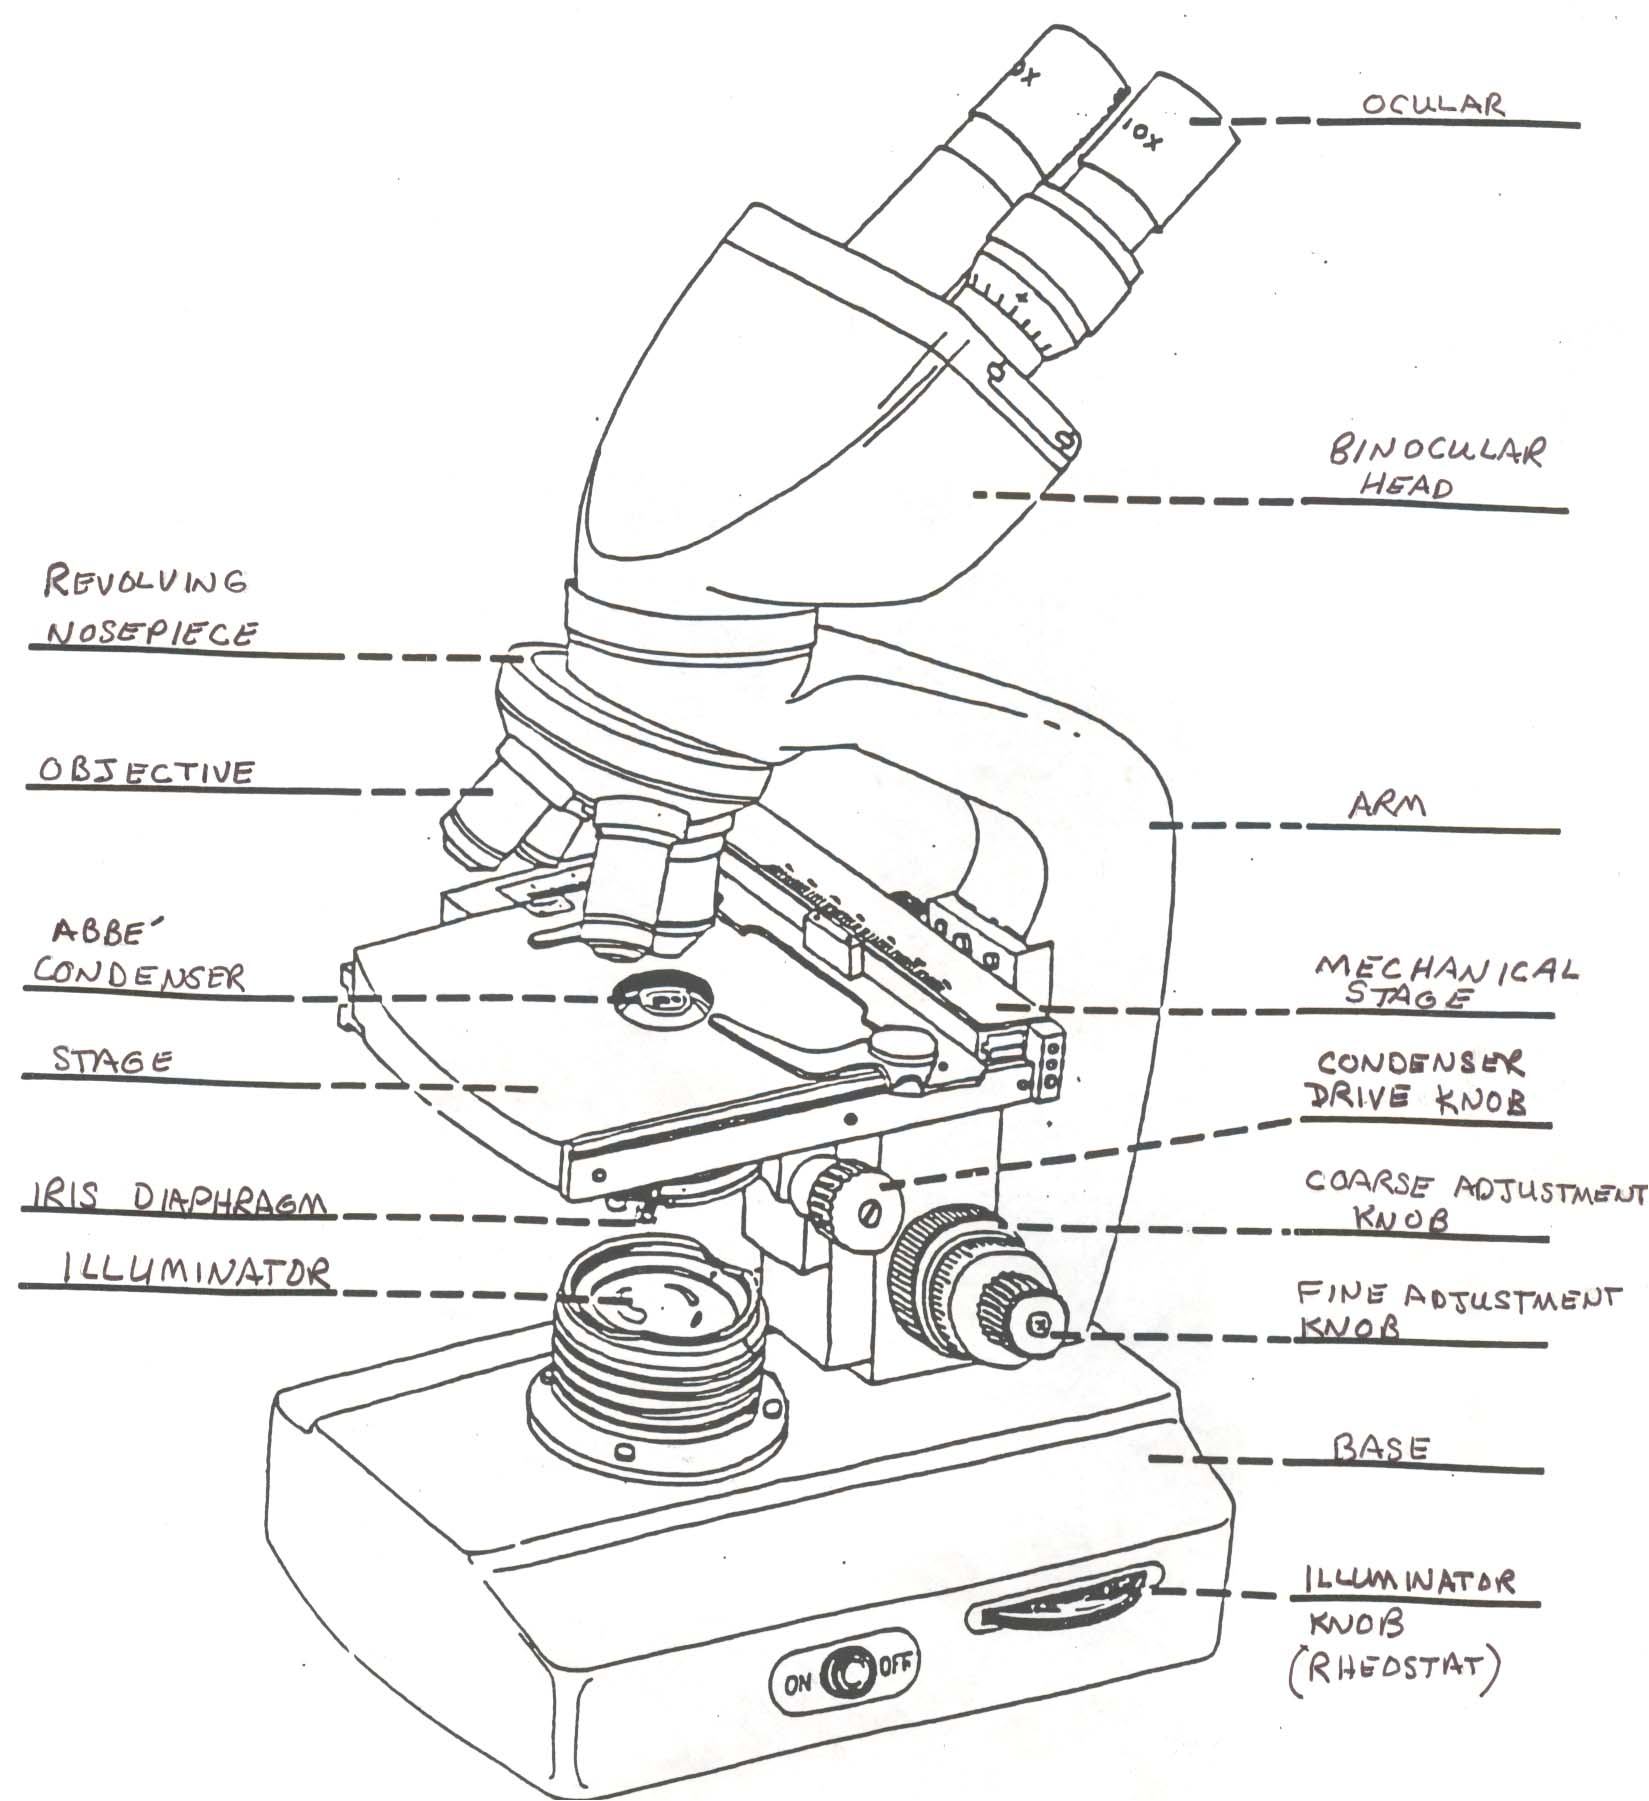 Microscope Drawing And Label At Getdrawings